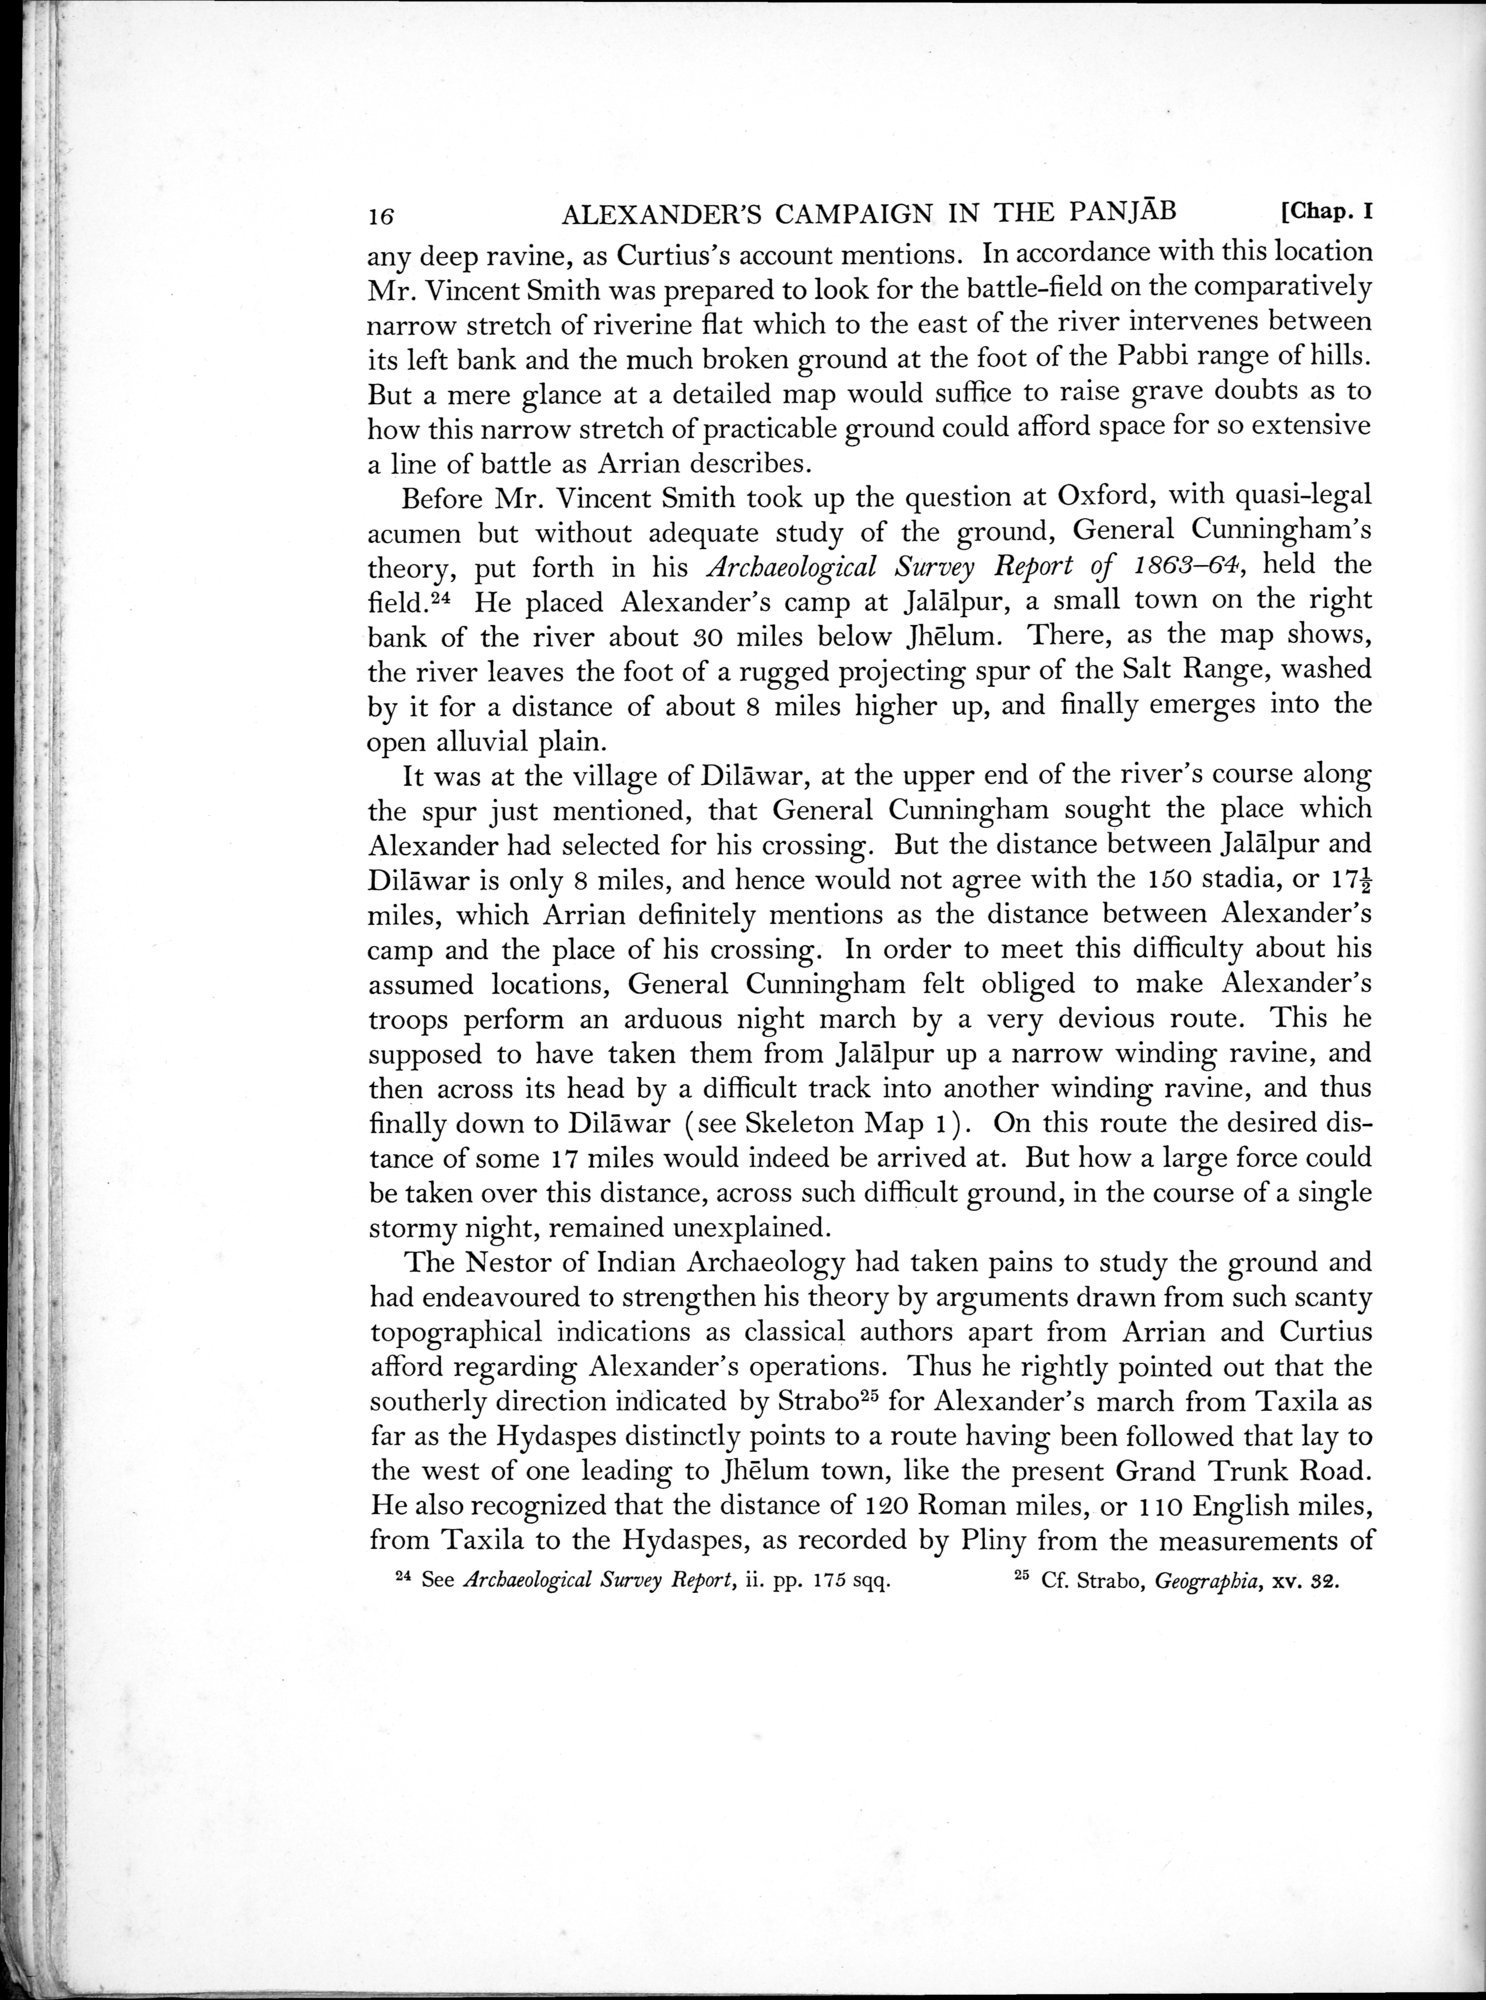 Archaeological Reconnaissances in North-Western India and South-Eastern Īrān : vol.1 / Page 40 (Grayscale High Resolution Image)